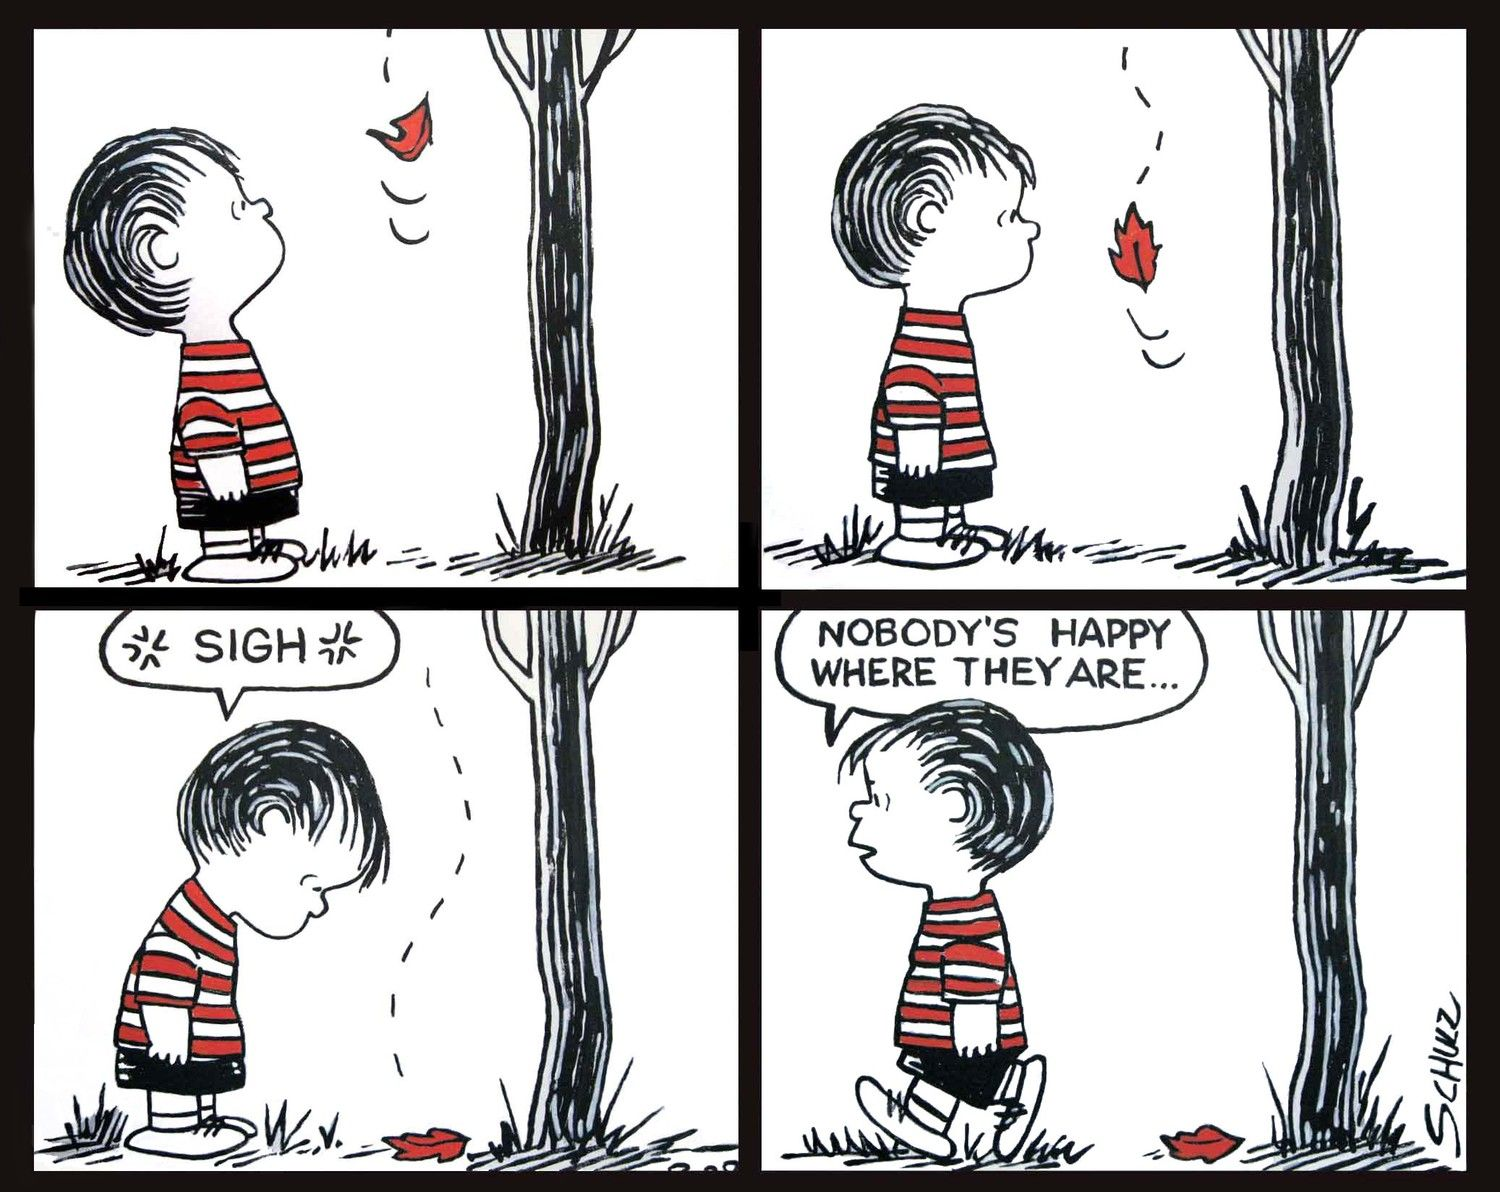 225 best images about Peanuts Comic Strip on Pinterest | The ...